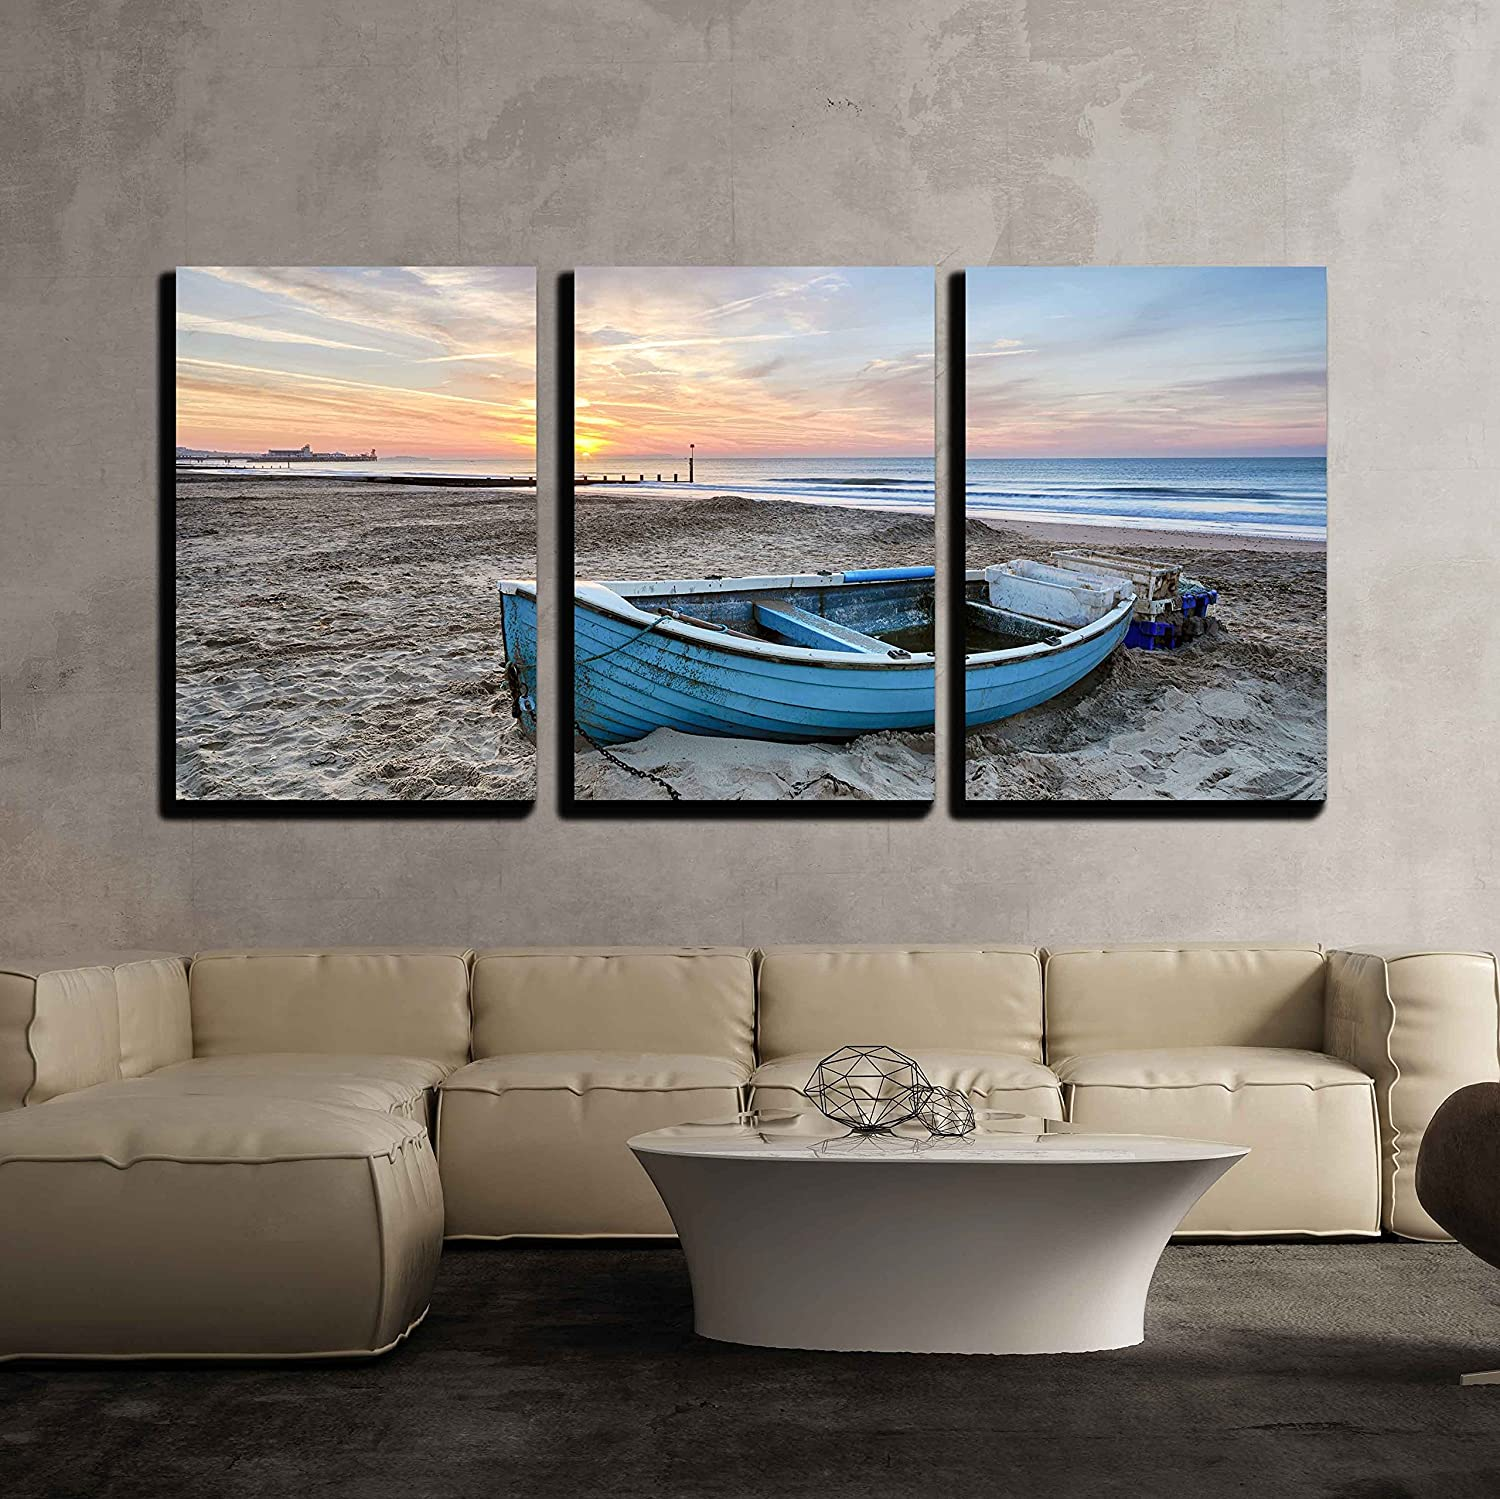 Wall26 - 3 Piece Canvas Wall Art - Turquoise bluee Fishing Boat at Sunrise on Bournemouth Beach with Pier in Far Distance - Modern Home Decor Stretched and Framed Ready to Hang - 16 x24 x3 Panels